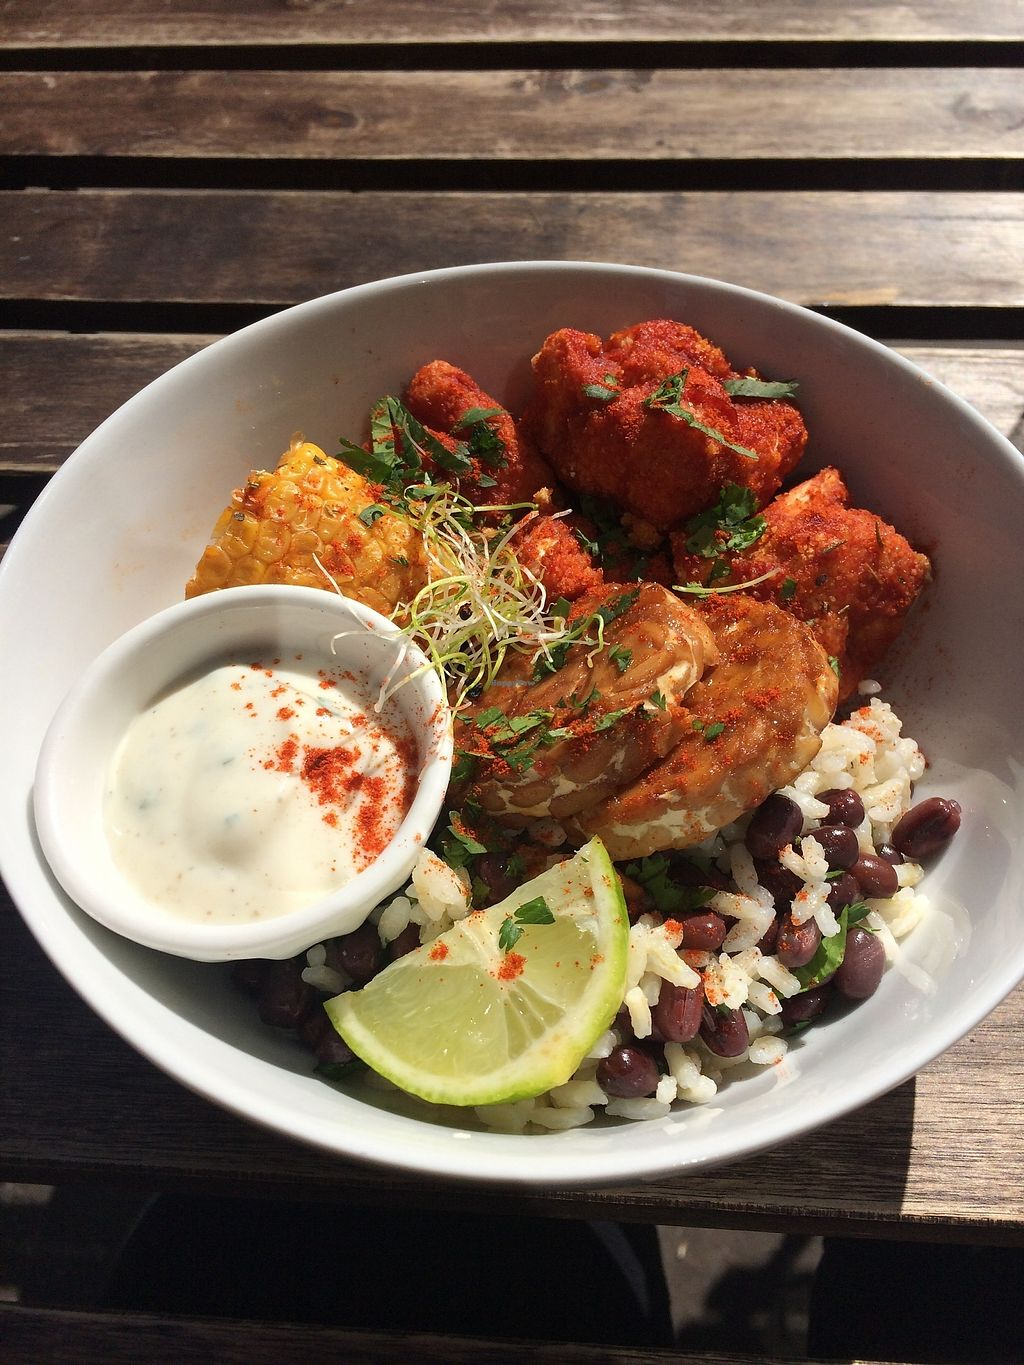 """Photo of Comptoir Veggie  by <a href=""""/members/profile/sabrinajh"""">sabrinajh</a> <br/>Buddha bowl - bbq cauliflower, tempeh, rice with black beans, corn on the cob with a creamy white sauce (tasted kind of like sour cream or tziki).  <br/> April 13, 2018  - <a href='/contact/abuse/image/98252/385253'>Report</a>"""